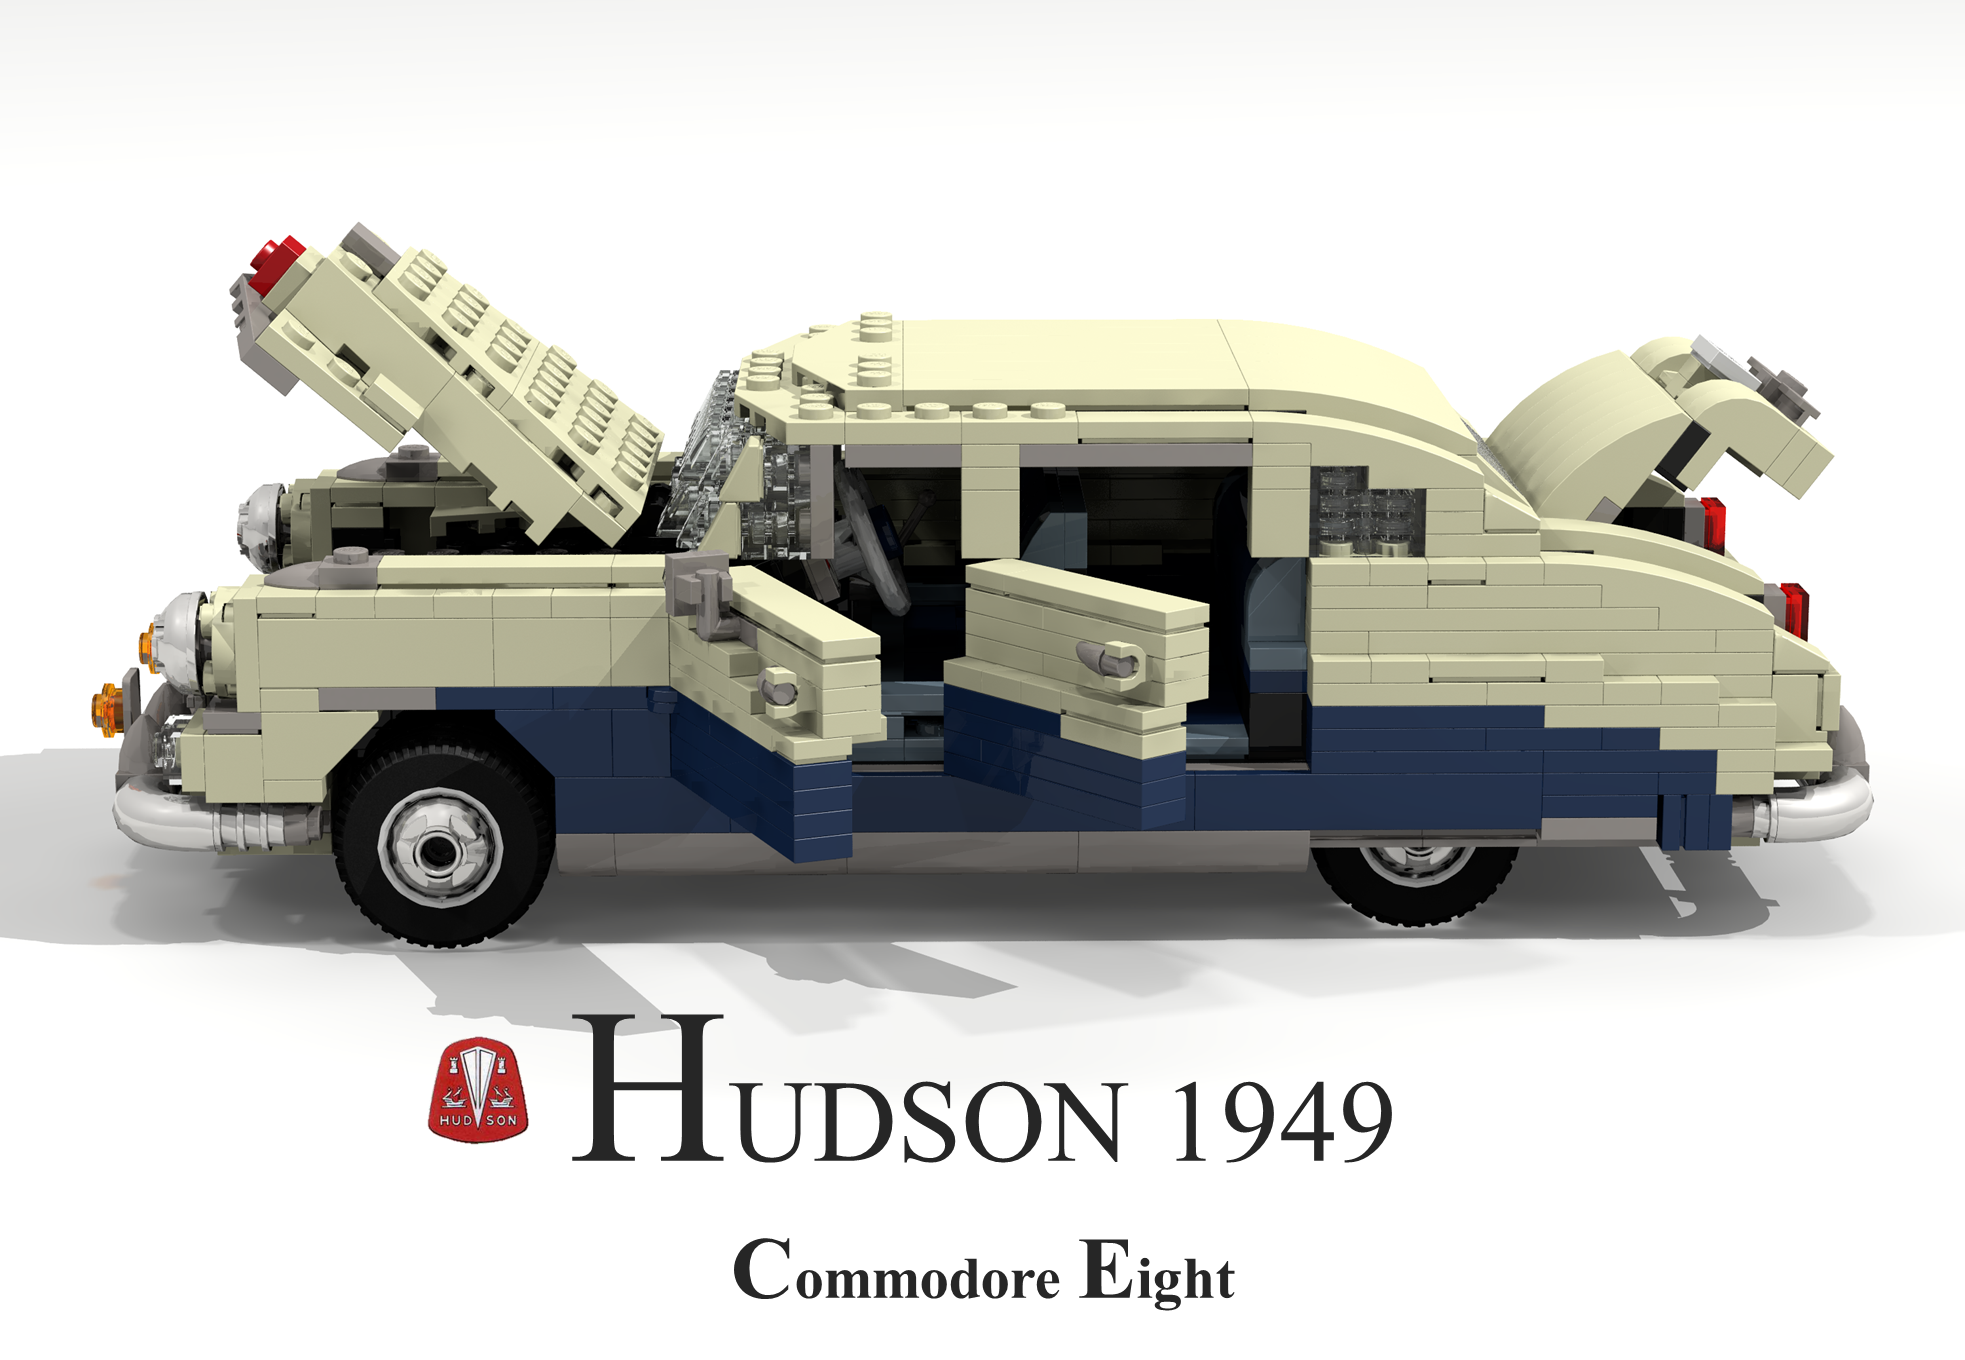 hudson_commodore_eight_1949_09.png